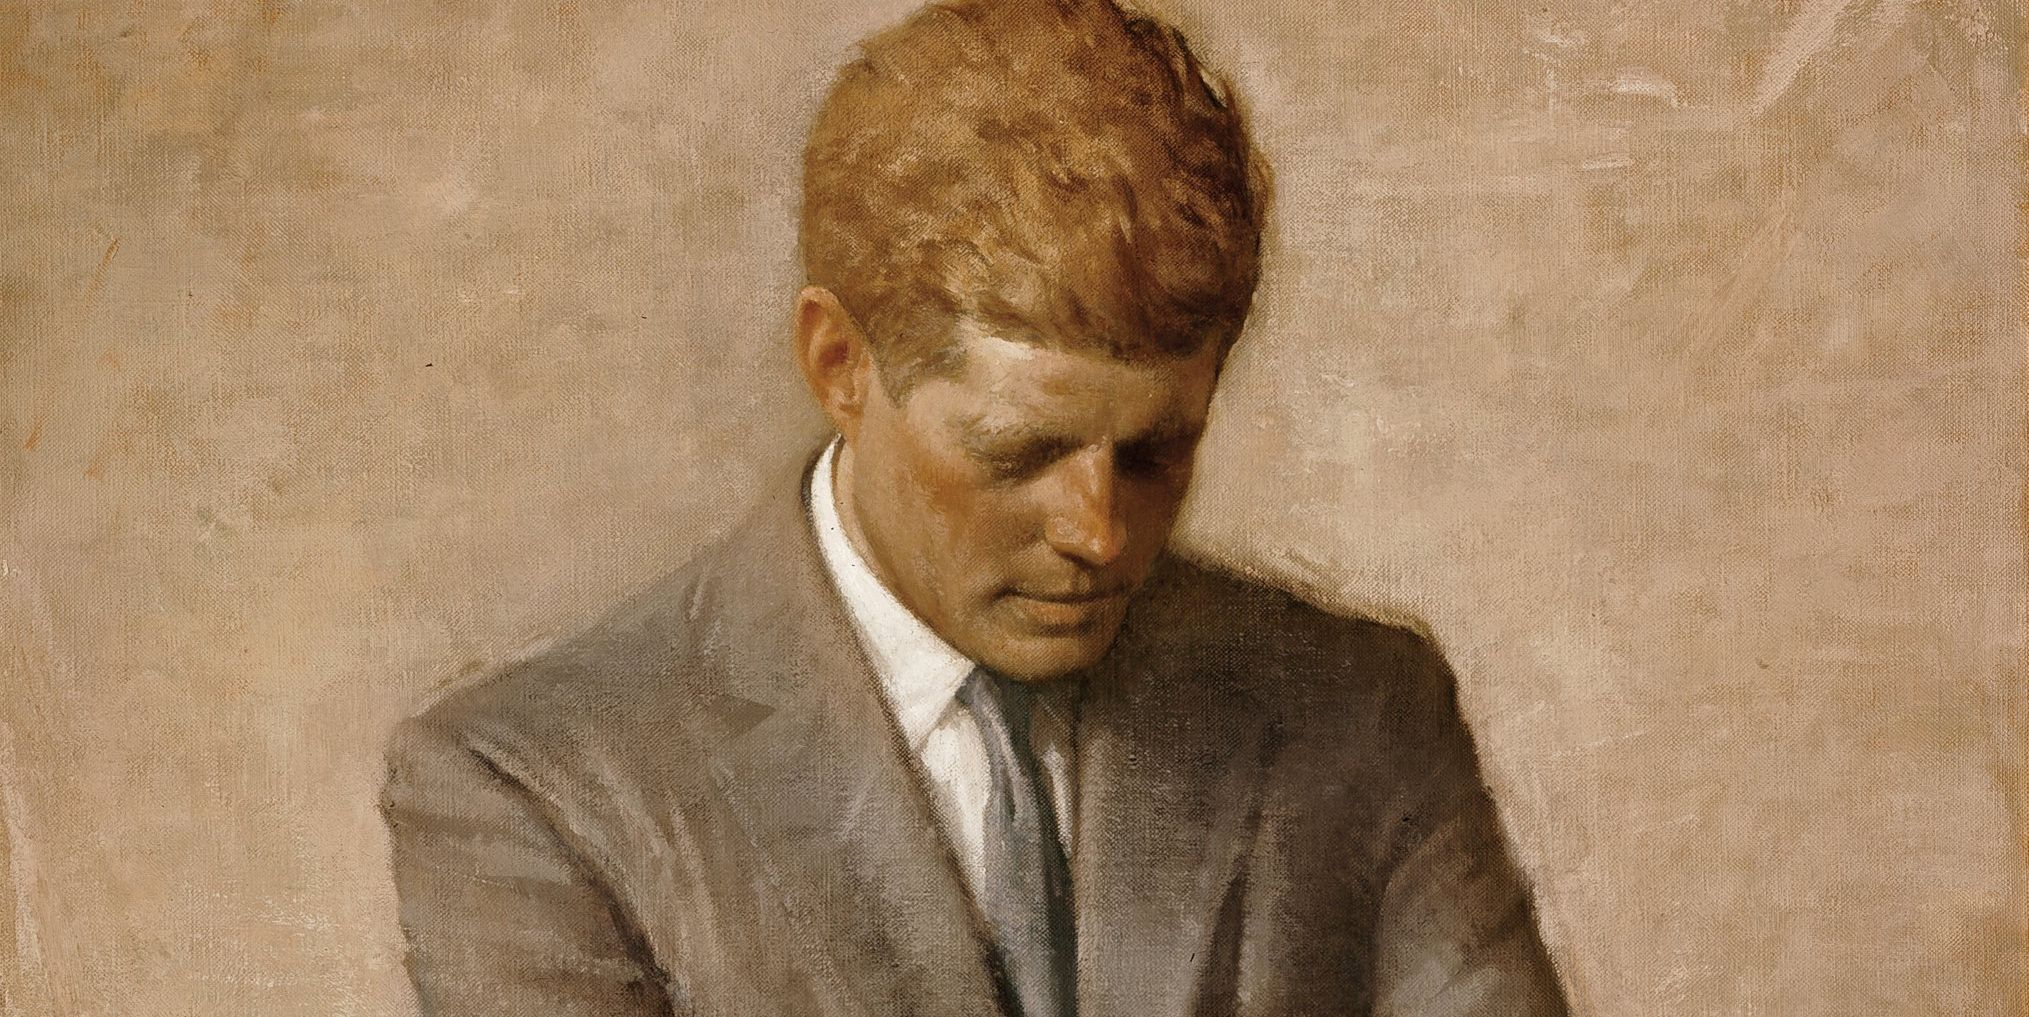 The Story Behind JFK's Official White House Portrait